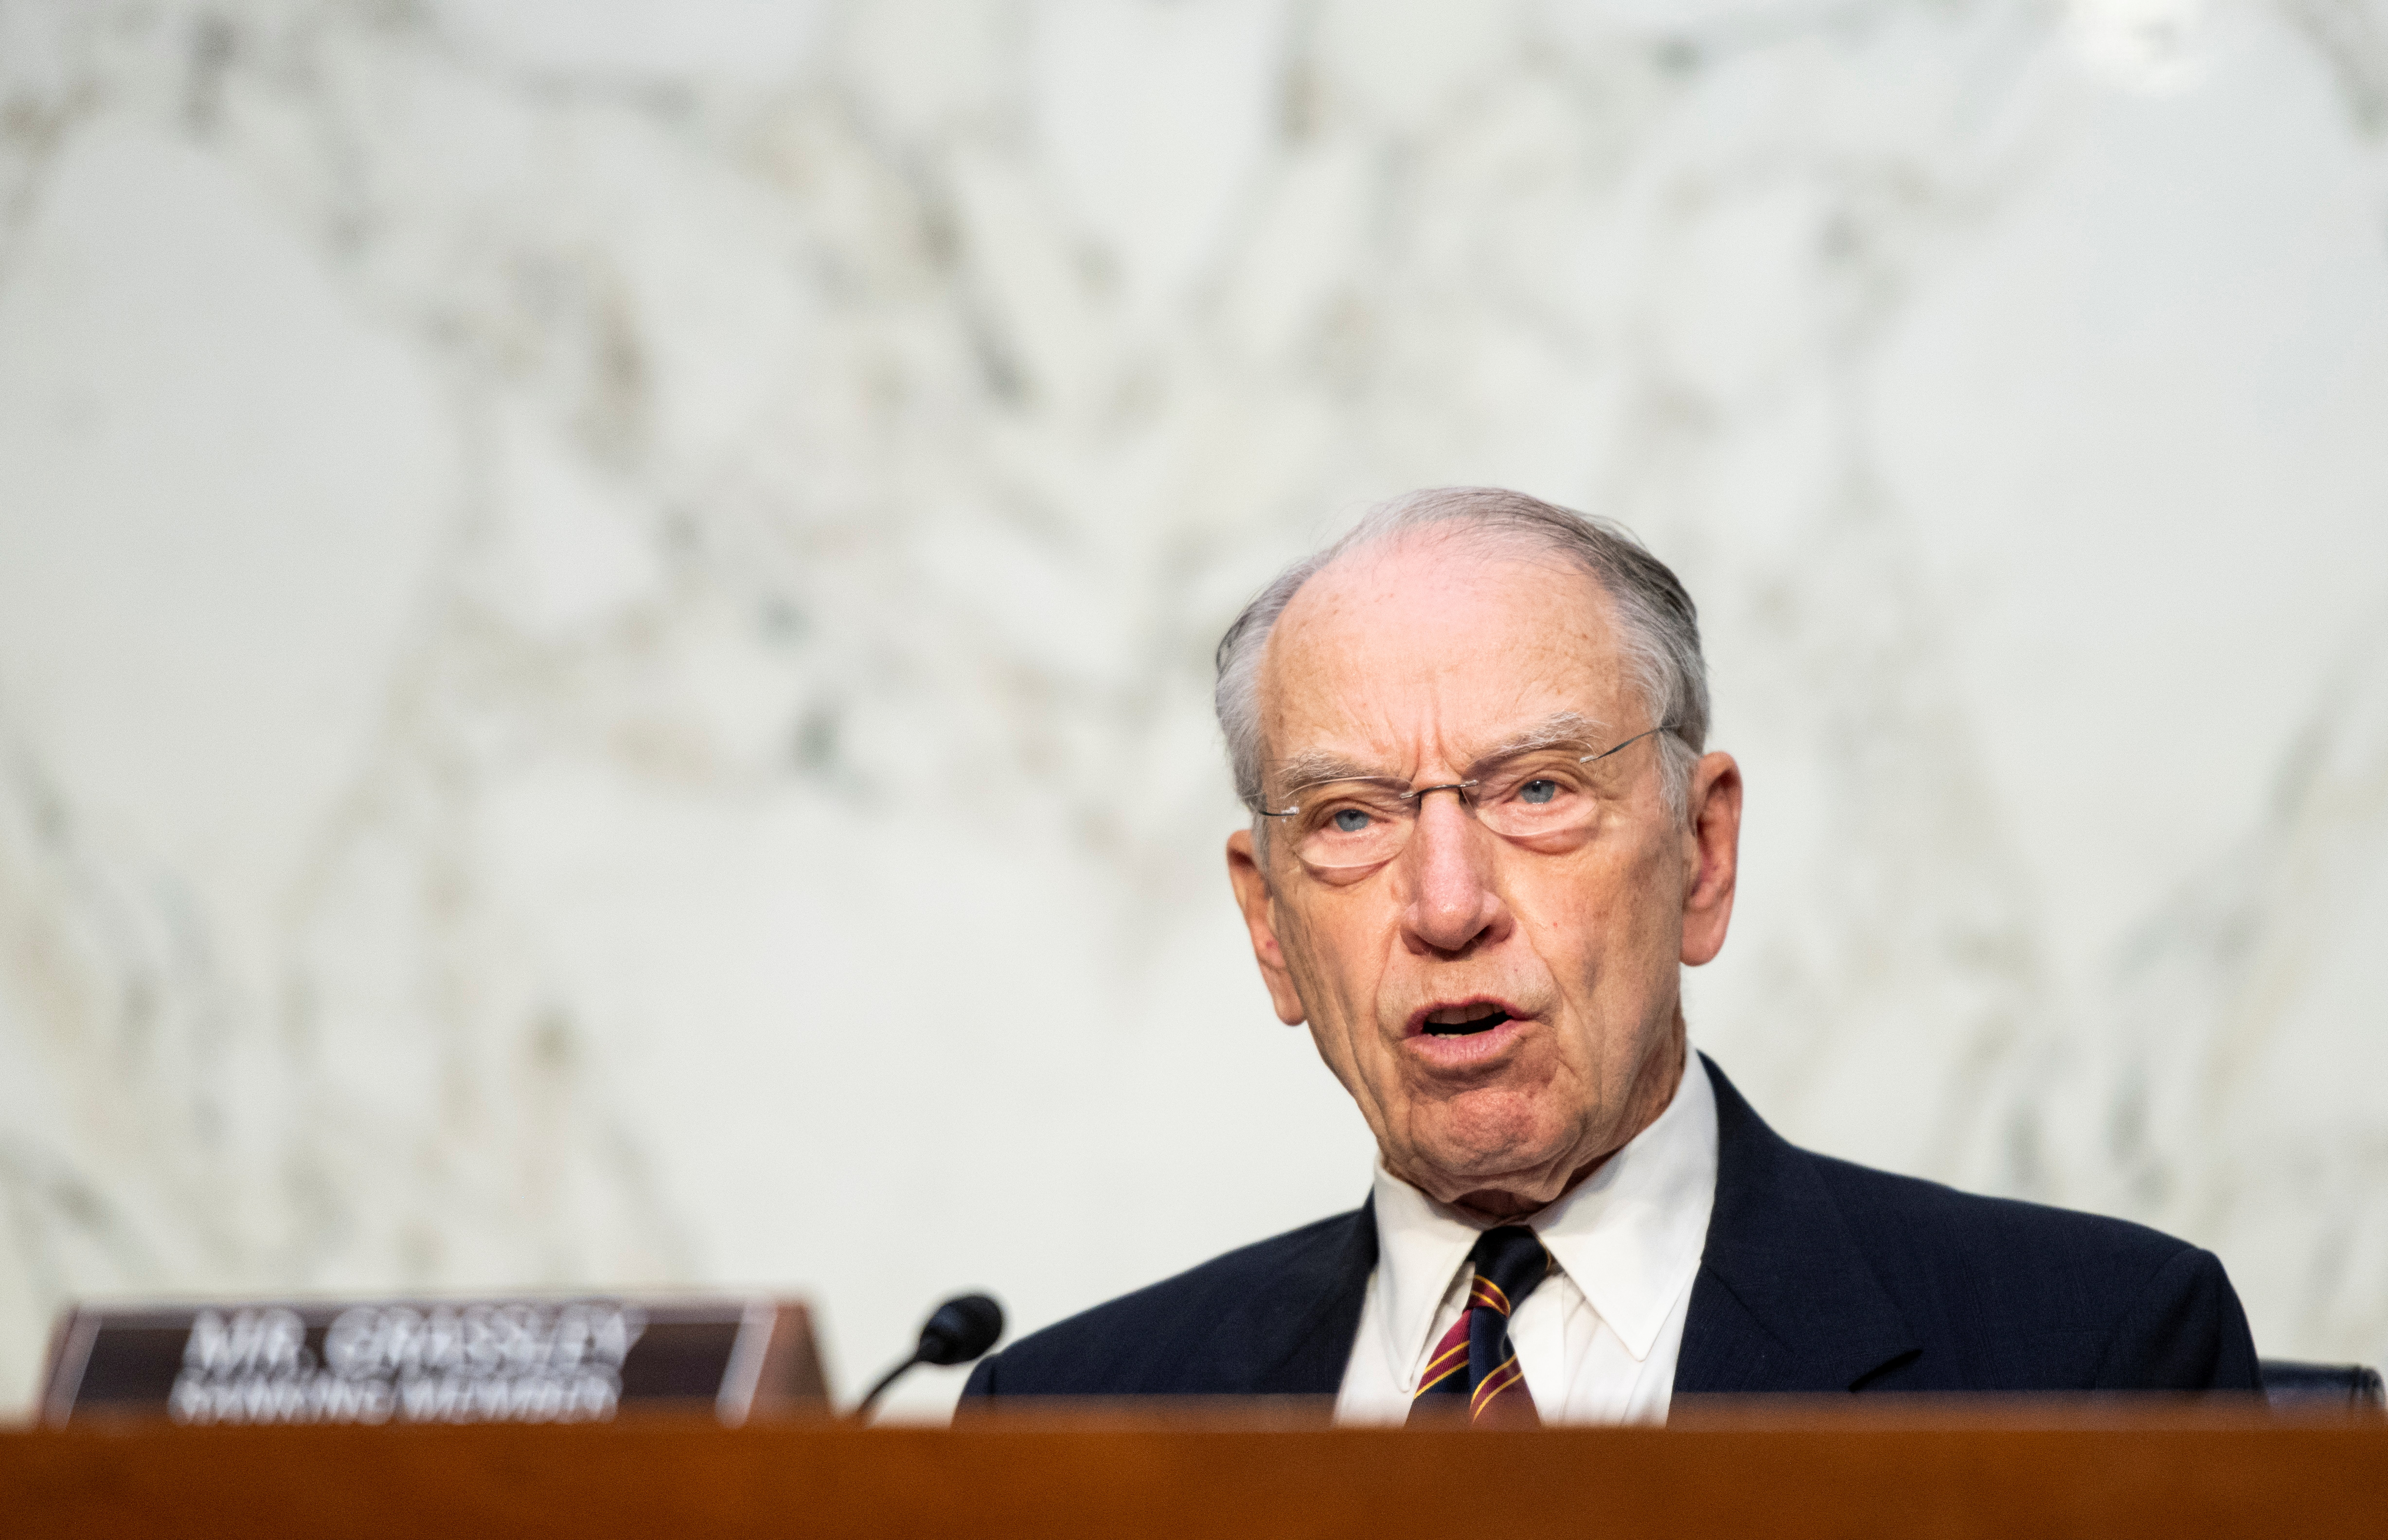 Ranking member Sen. Chuck Grassley (R-IA) speaks during the Senate Judiciary Committee hearing on Jim Crow 2021: The Latest Assault on the Right to Vote, in Washington, D.C., U.S., April 20, 2021. Bill Clark/Pool via REUTERS